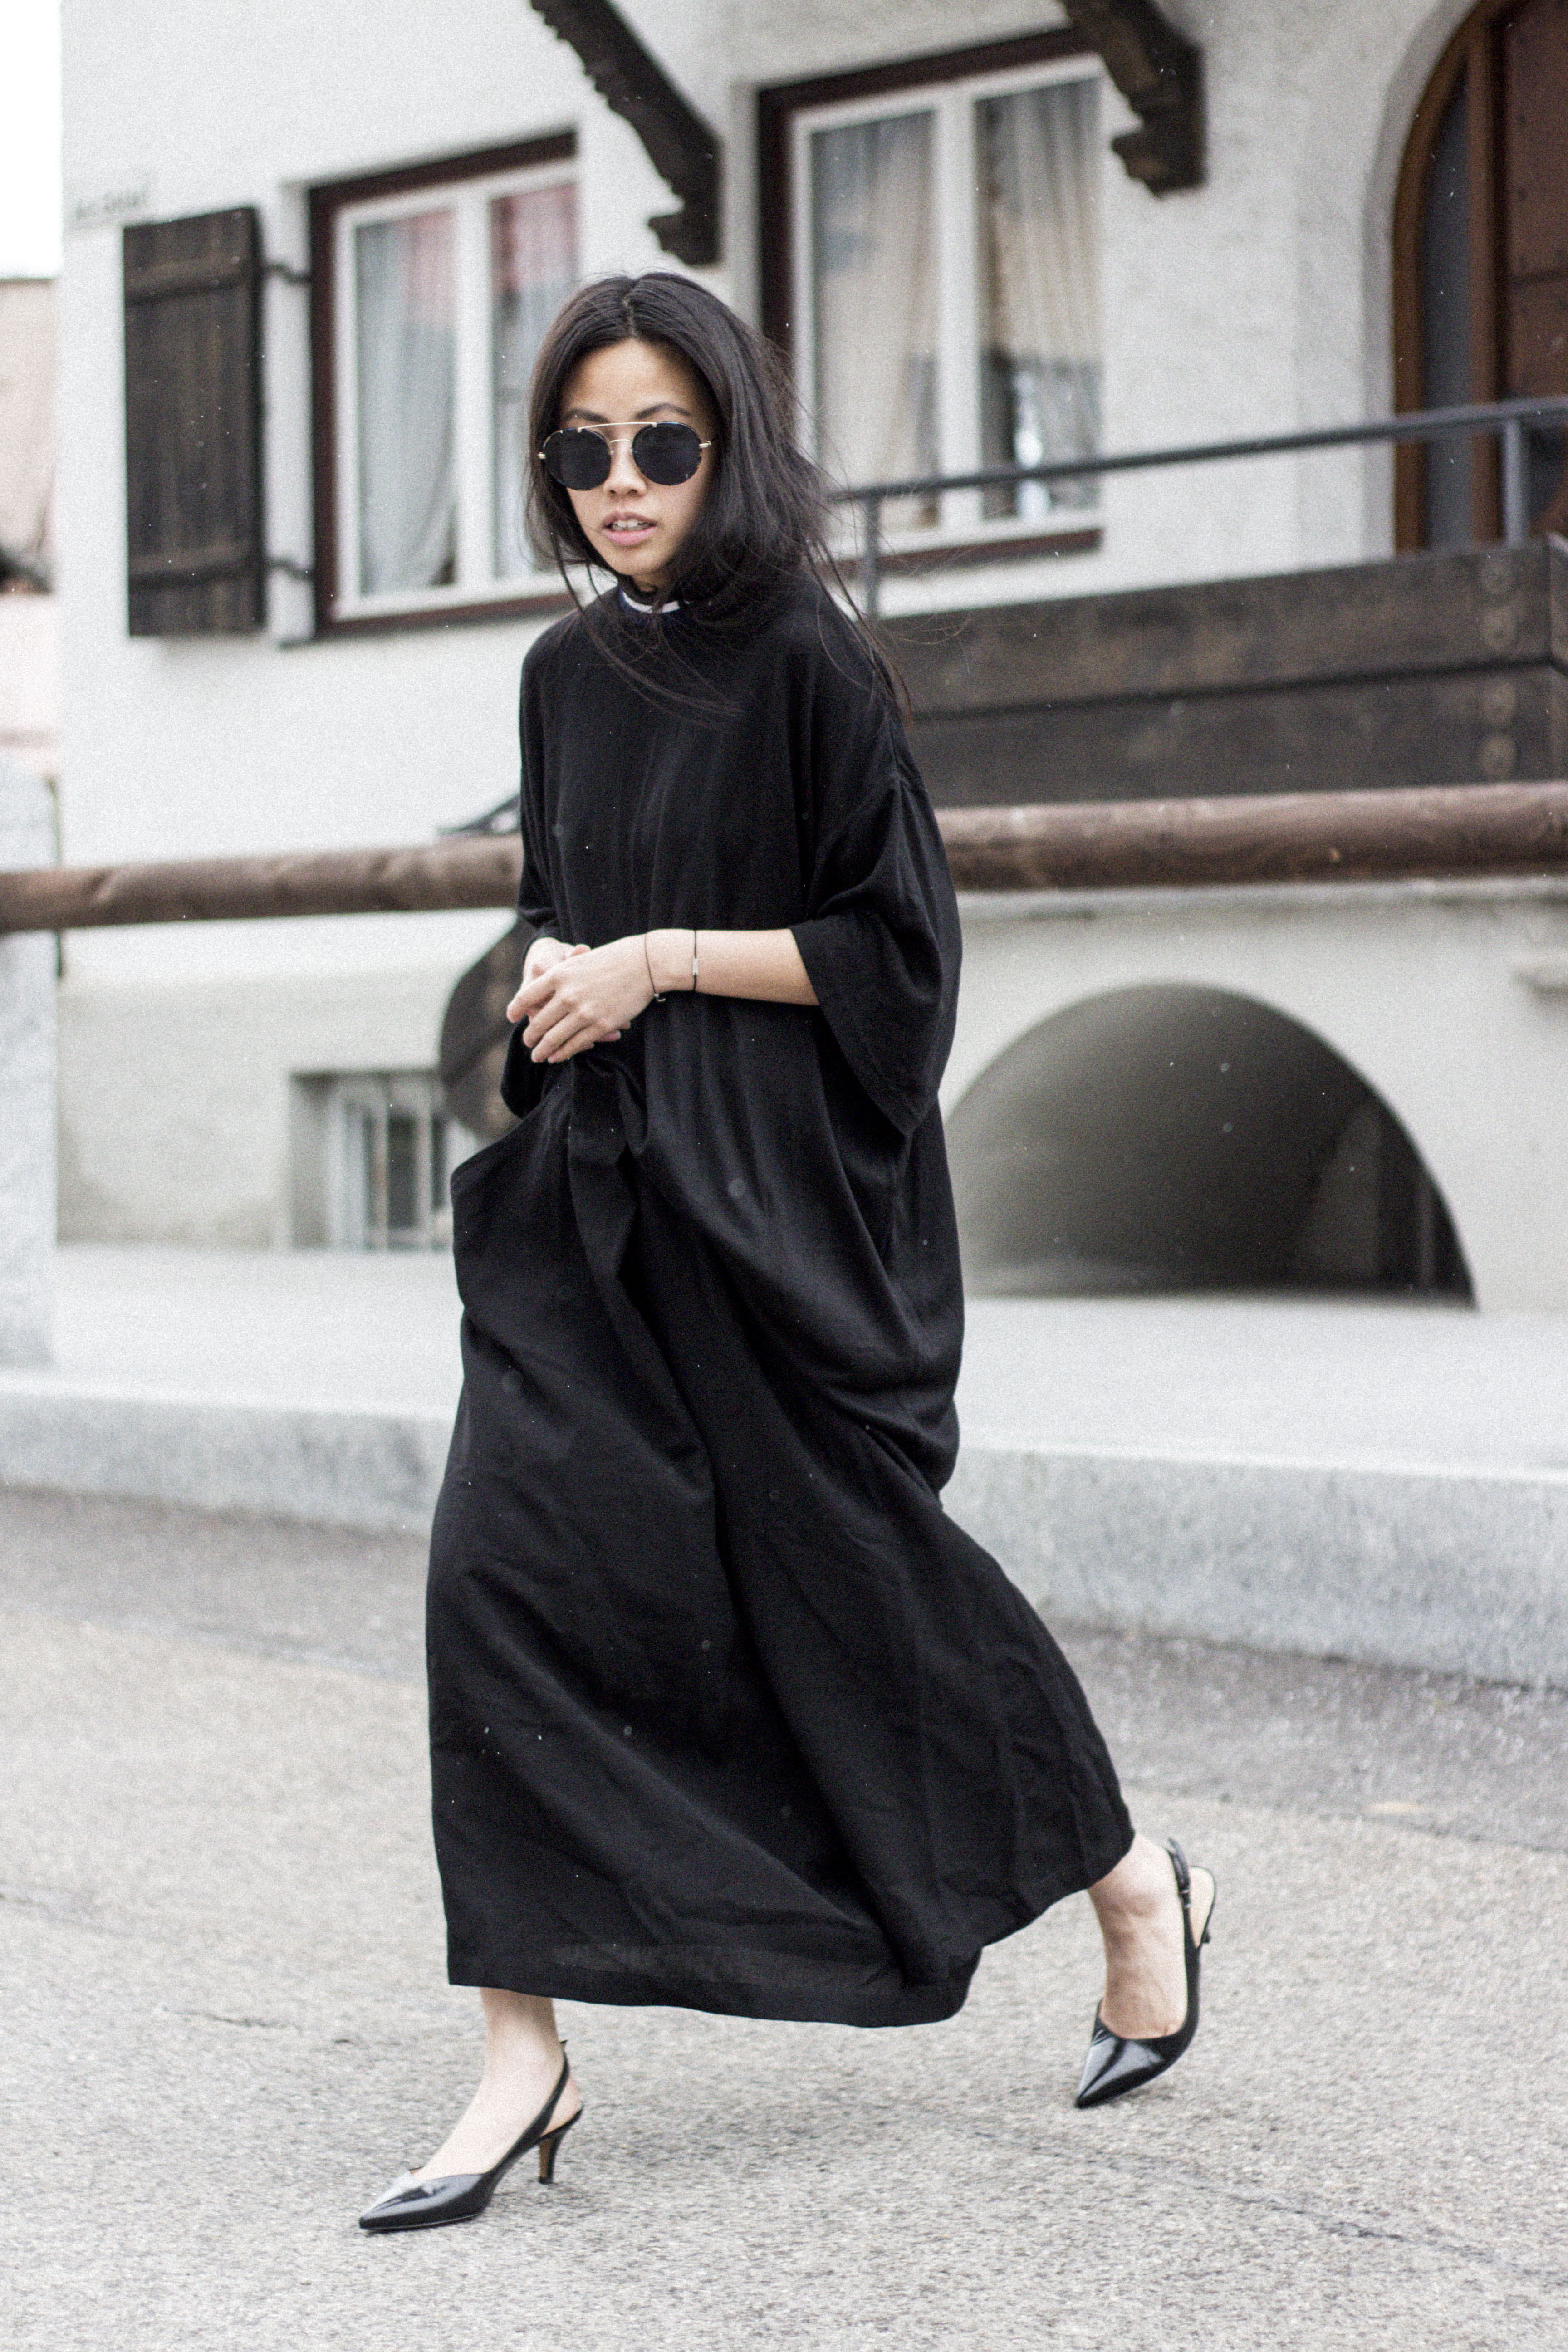 IHEARTALICE.DE – Fashion & Travel-Blog by Alice M. Huynh from Berlin/Germany: All black Everything Look wearing Prada Shades, Non Tokyo Turtleneck Dress, Yohji Yamamoto oversize Skirt/Pants, Peter Kaiser Kitten Heels in Black / OOTD